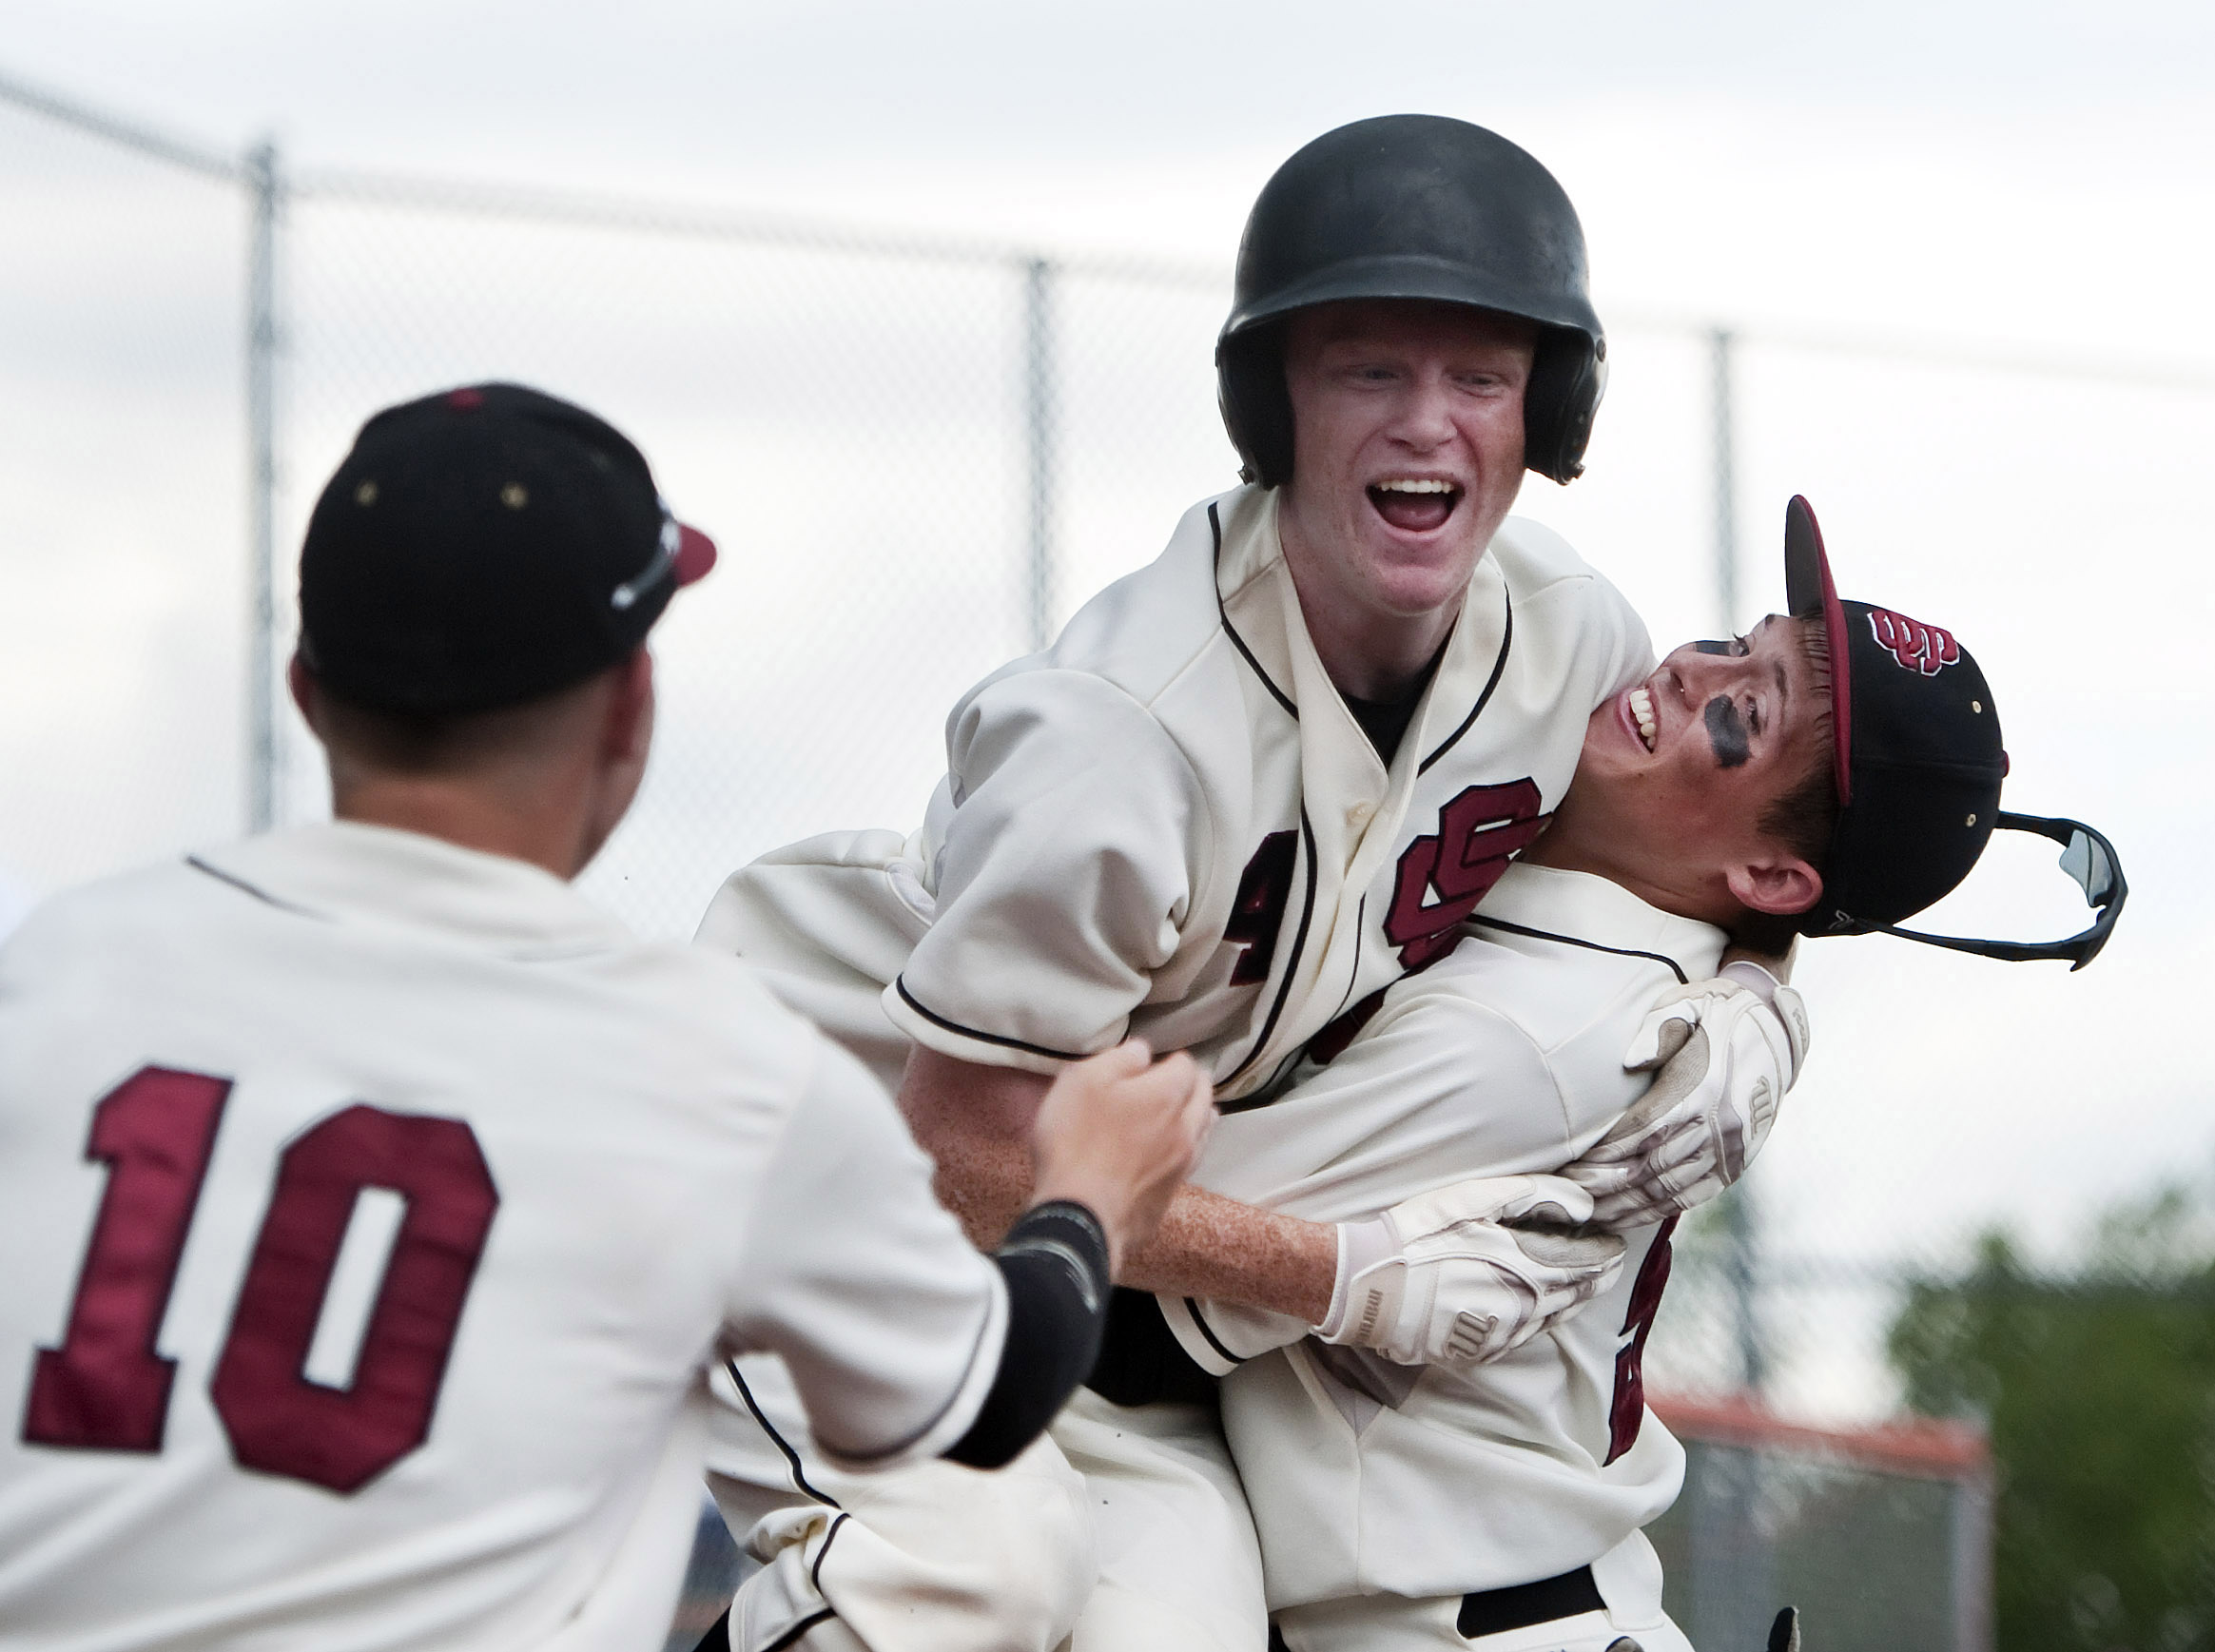 Serra Catholic's Zachary Bowen is lifted by Serra Catholic's Ryan Anselmino as Serra Catholic's Jake Eged and teammates celebrate their win over Portage during a PIAA Class A playoff game on Monday, June 6, 2016 at Greater Latrobe High School. Serra Catholic won 4-3.